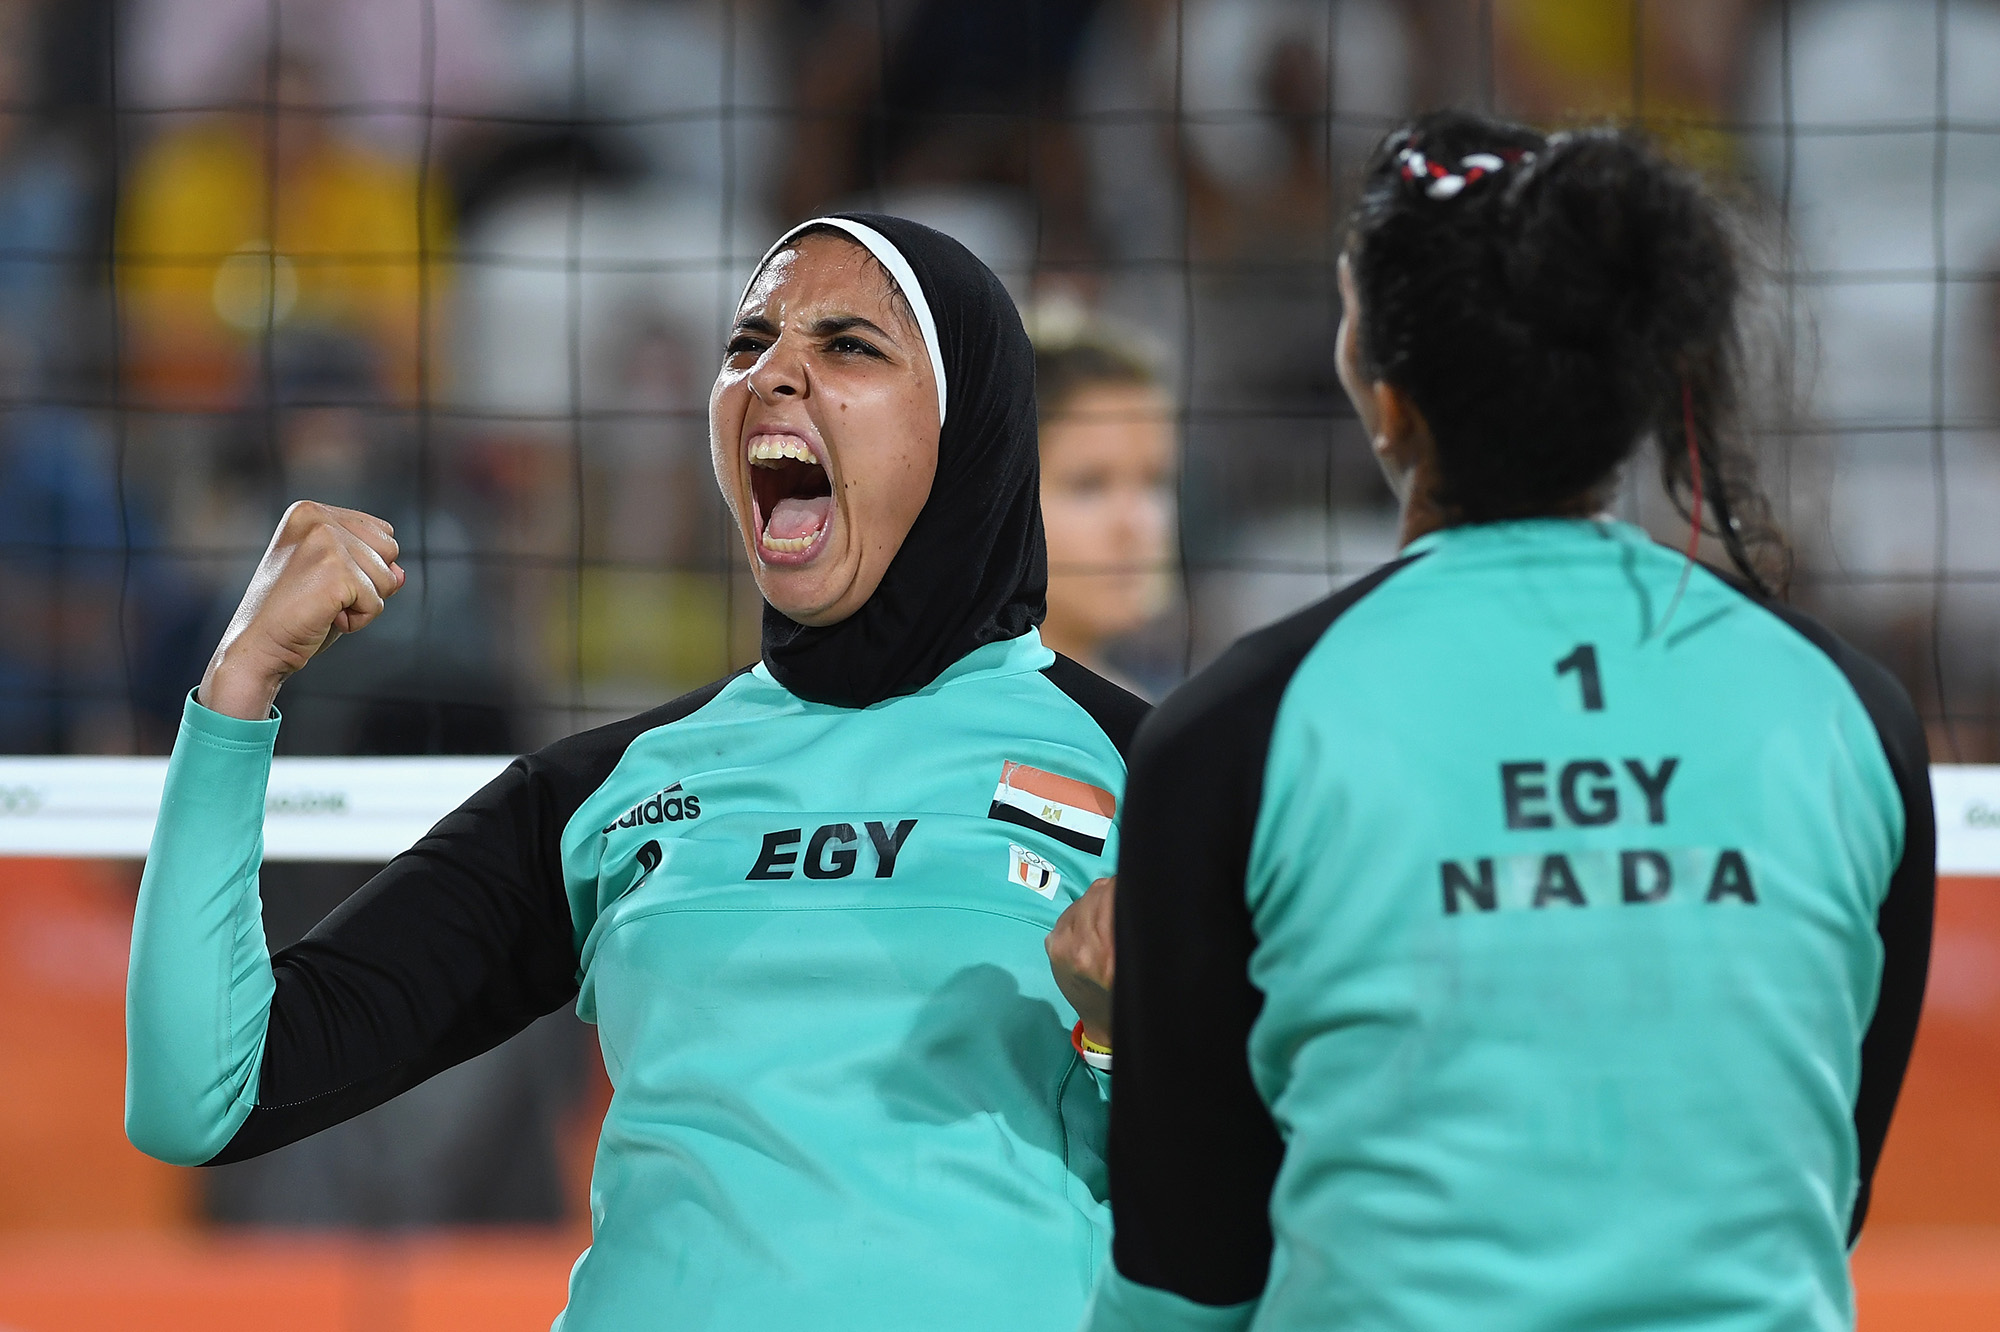 Doaa Elghobashy of Egypt reacts during the Women's Beach Volleyball preliminary round Pool D match against Laura Ludwig and Kira Walkenhorst of Germany on Day 2 of the Rio 2016 Olympic Games at the Beach Volleyball Arena on August 7, 2016 in Rio de Janeiro, Brazil.  (Photo by Shaun Botterill/Getty Images)